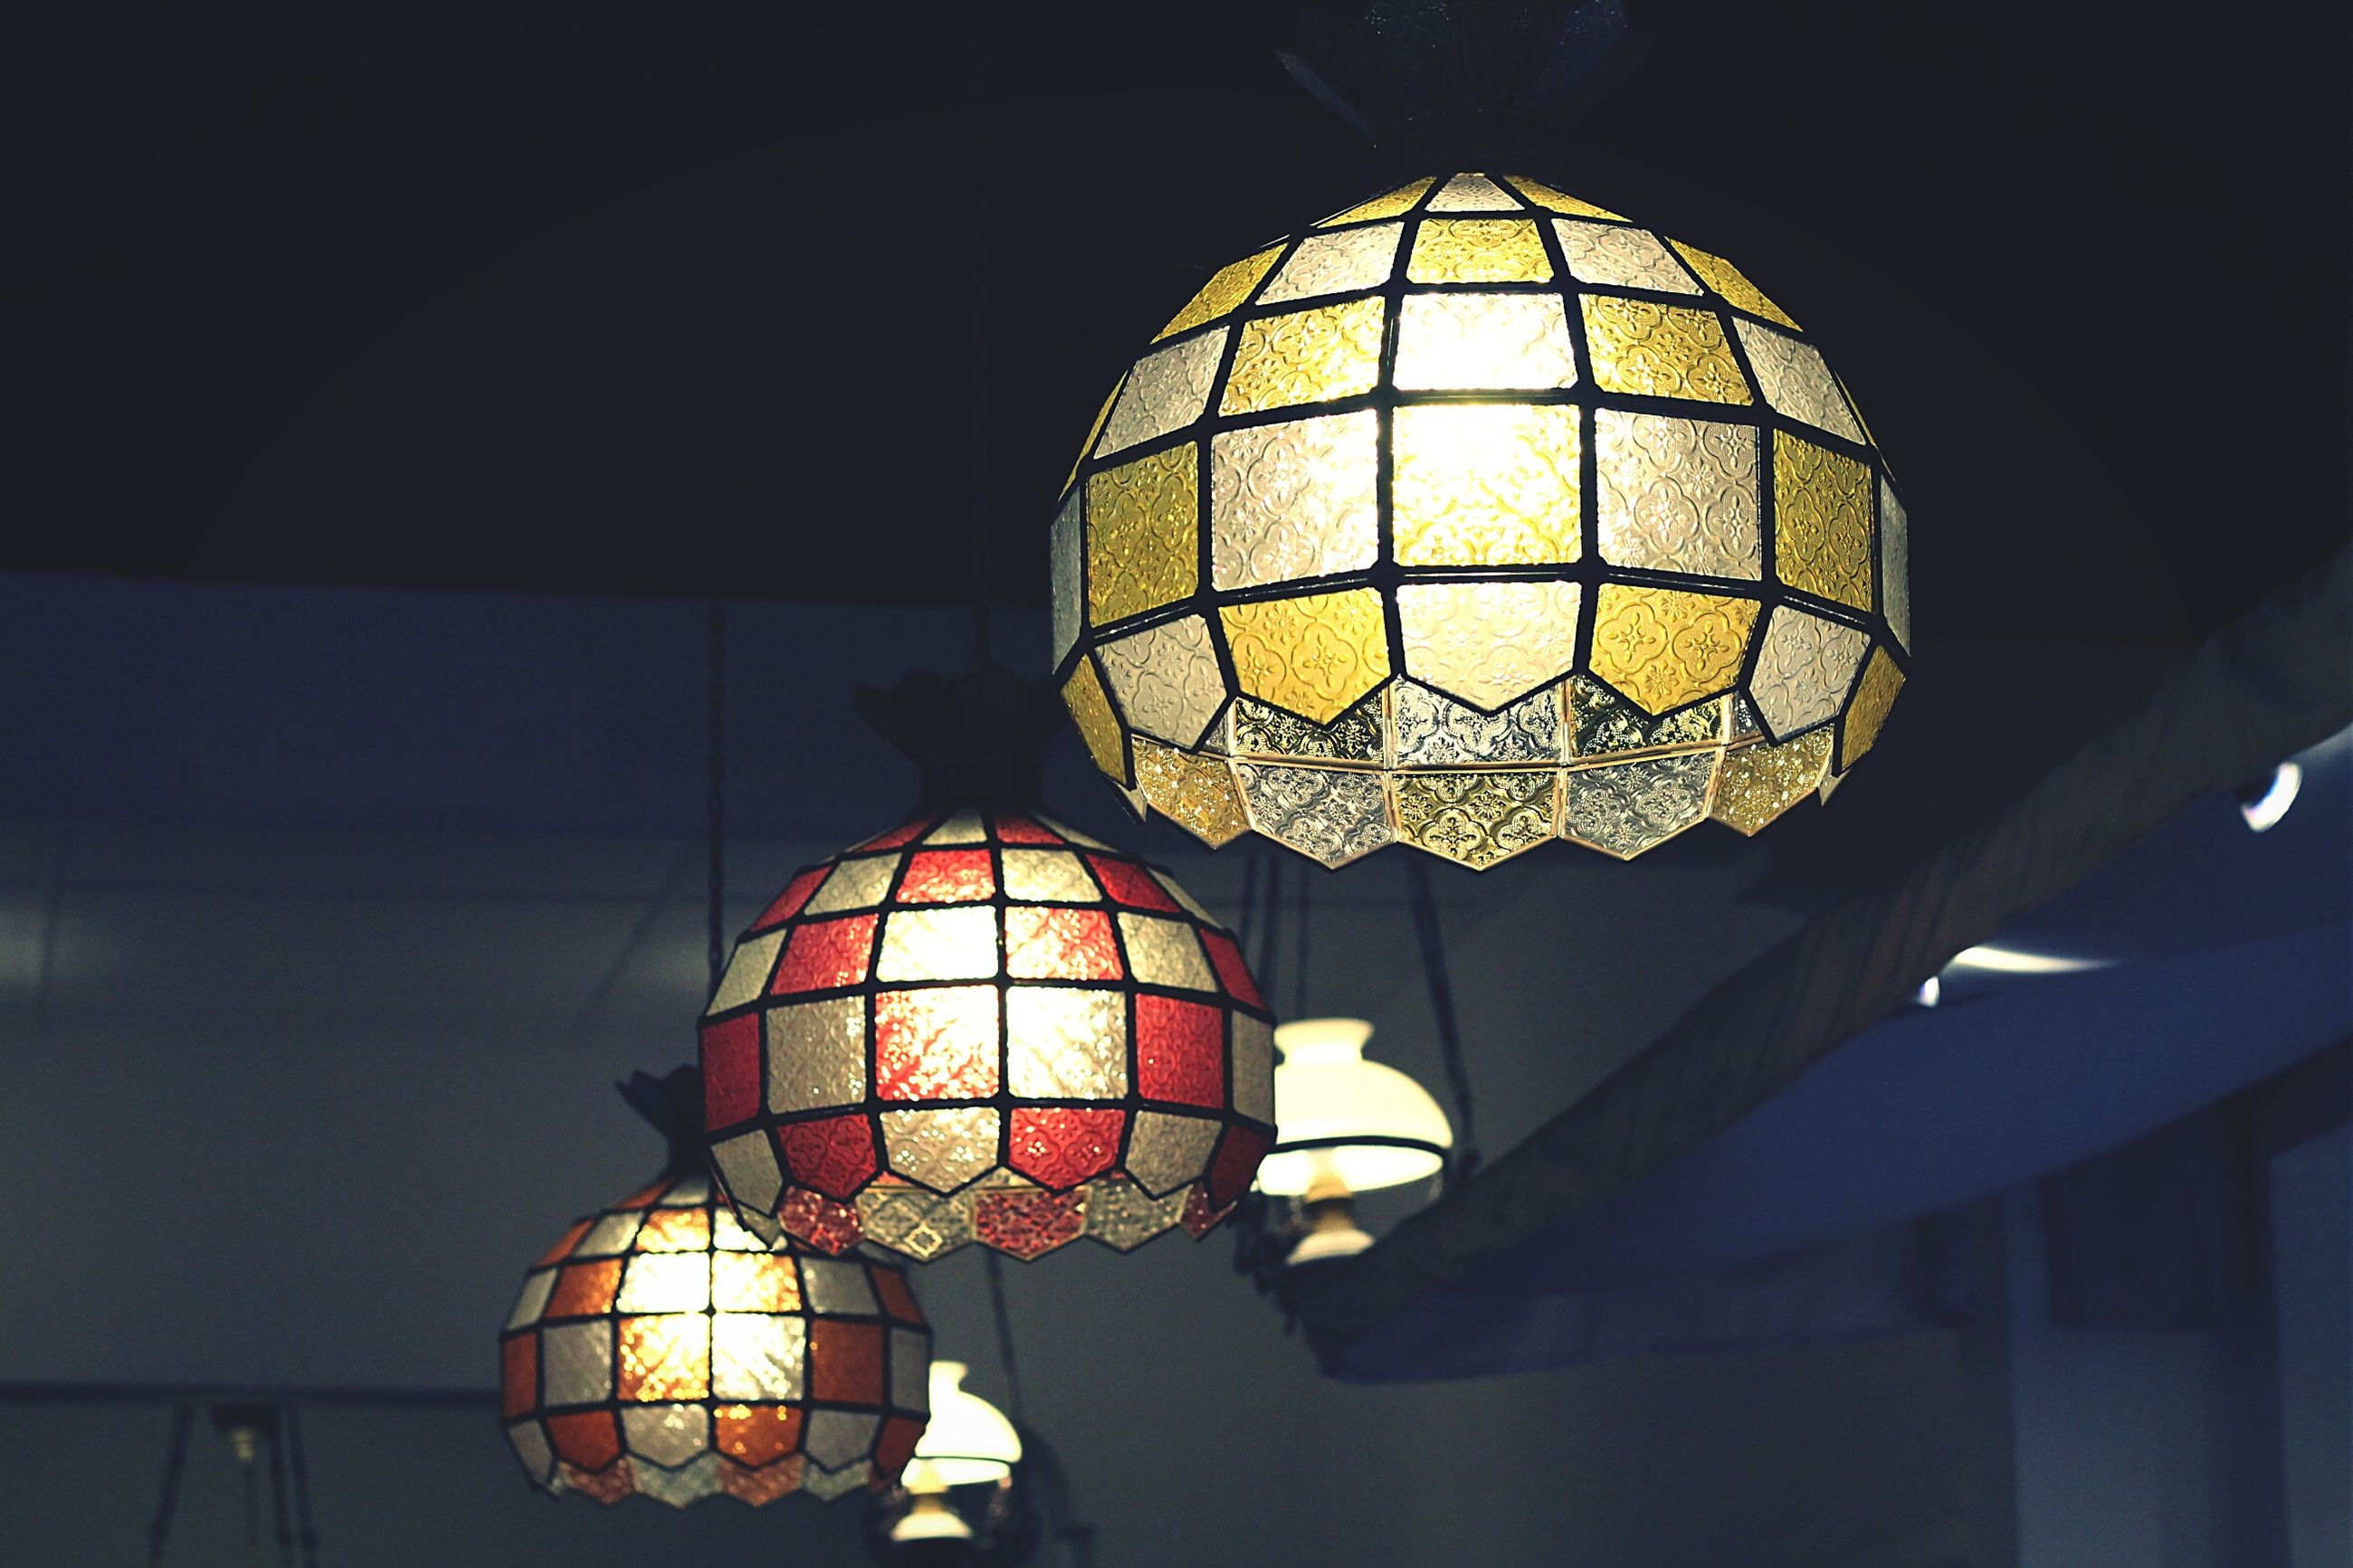 illuminated, lighting equipment, indoors, ceiling, hanging, low angle view, night, decoration, light bulb, electric light, electricity, lantern, electric lamp, chandelier, glowing, light - natural phenomenon, built structure, light, lamp, decor